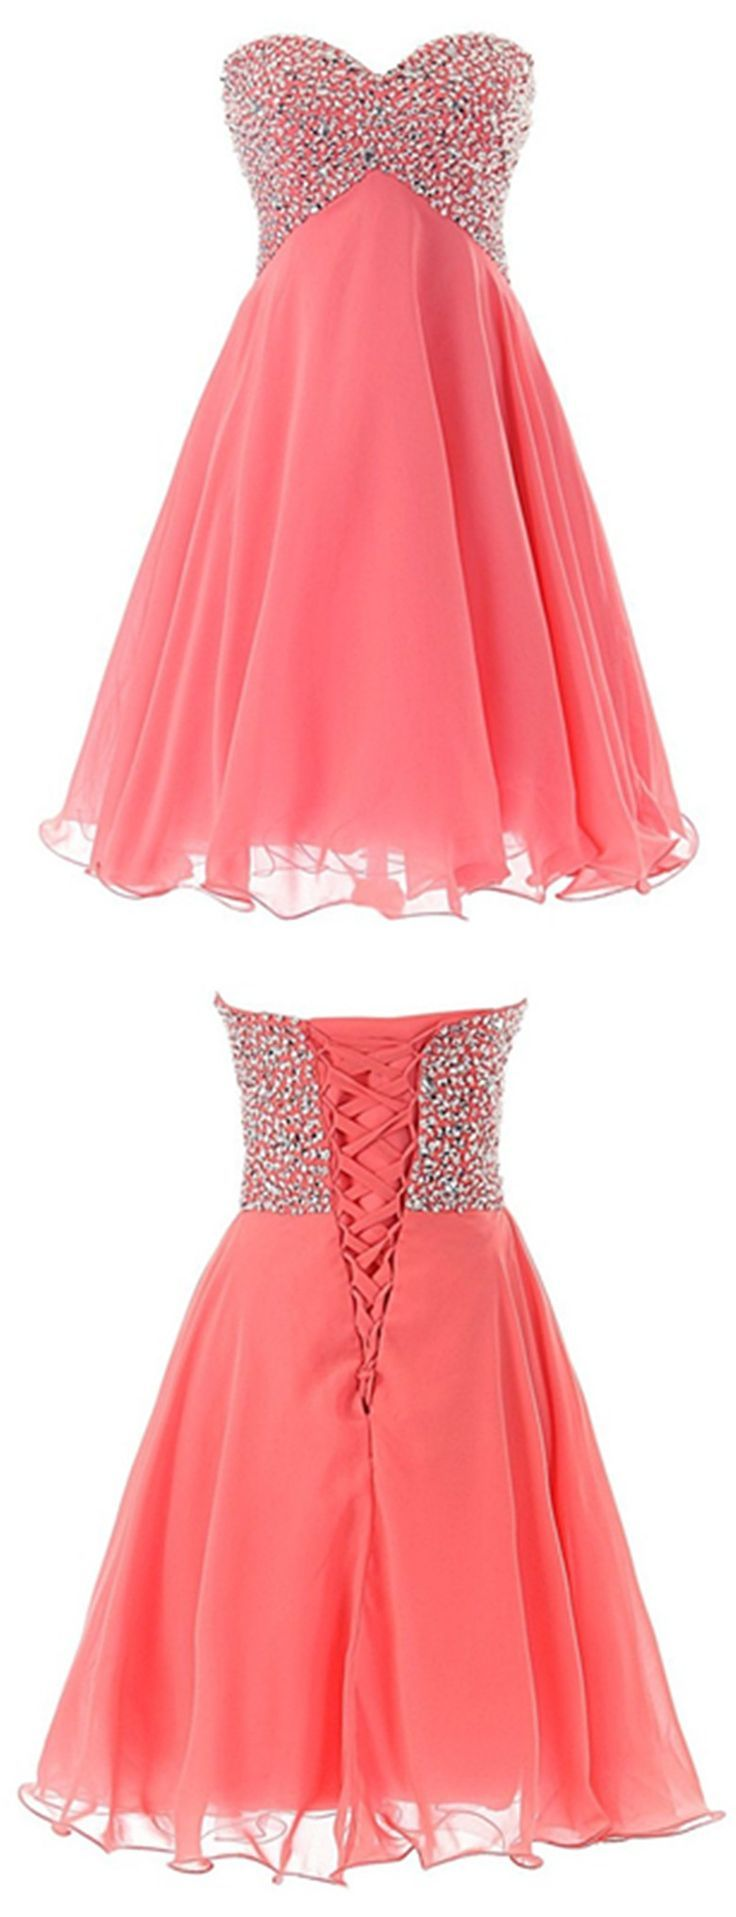 Homecoming Dresses 2018 2016 homecoming dress,sparkling homecoming dress,chiffon homecoming dress,mini homecoming dress,coral homecoming dress,lace up homecoming dress,teen fashion dress,coral back to school dress,cheap homecoming dress,2016 cheap homecoming dress under 100$